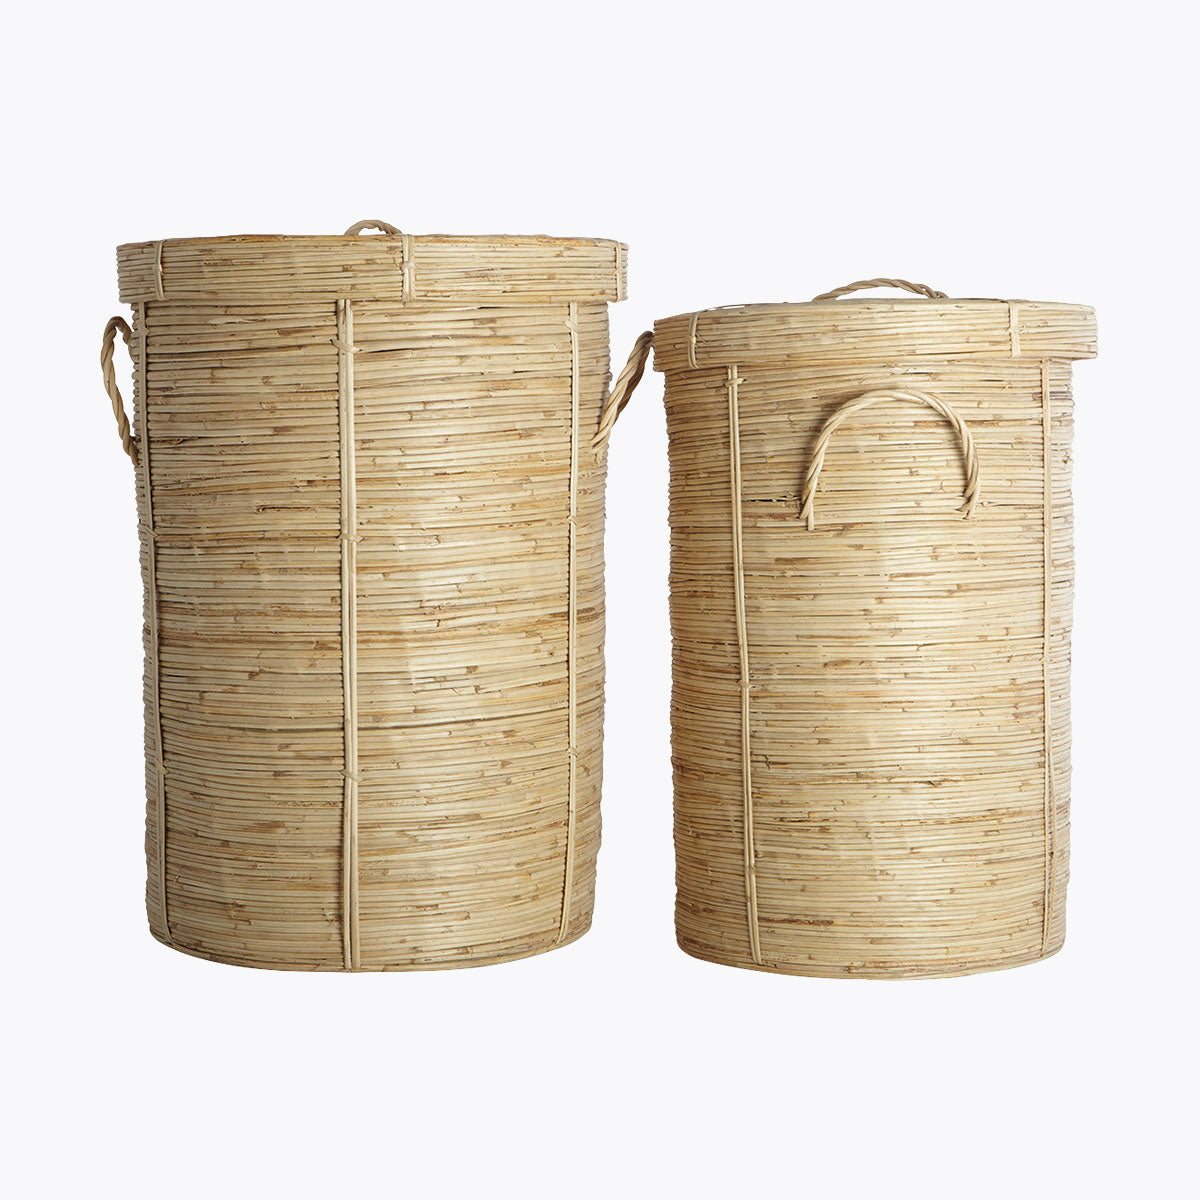 Image of   Laundry baskets, Chaka, Nature, Set of 2 sizes